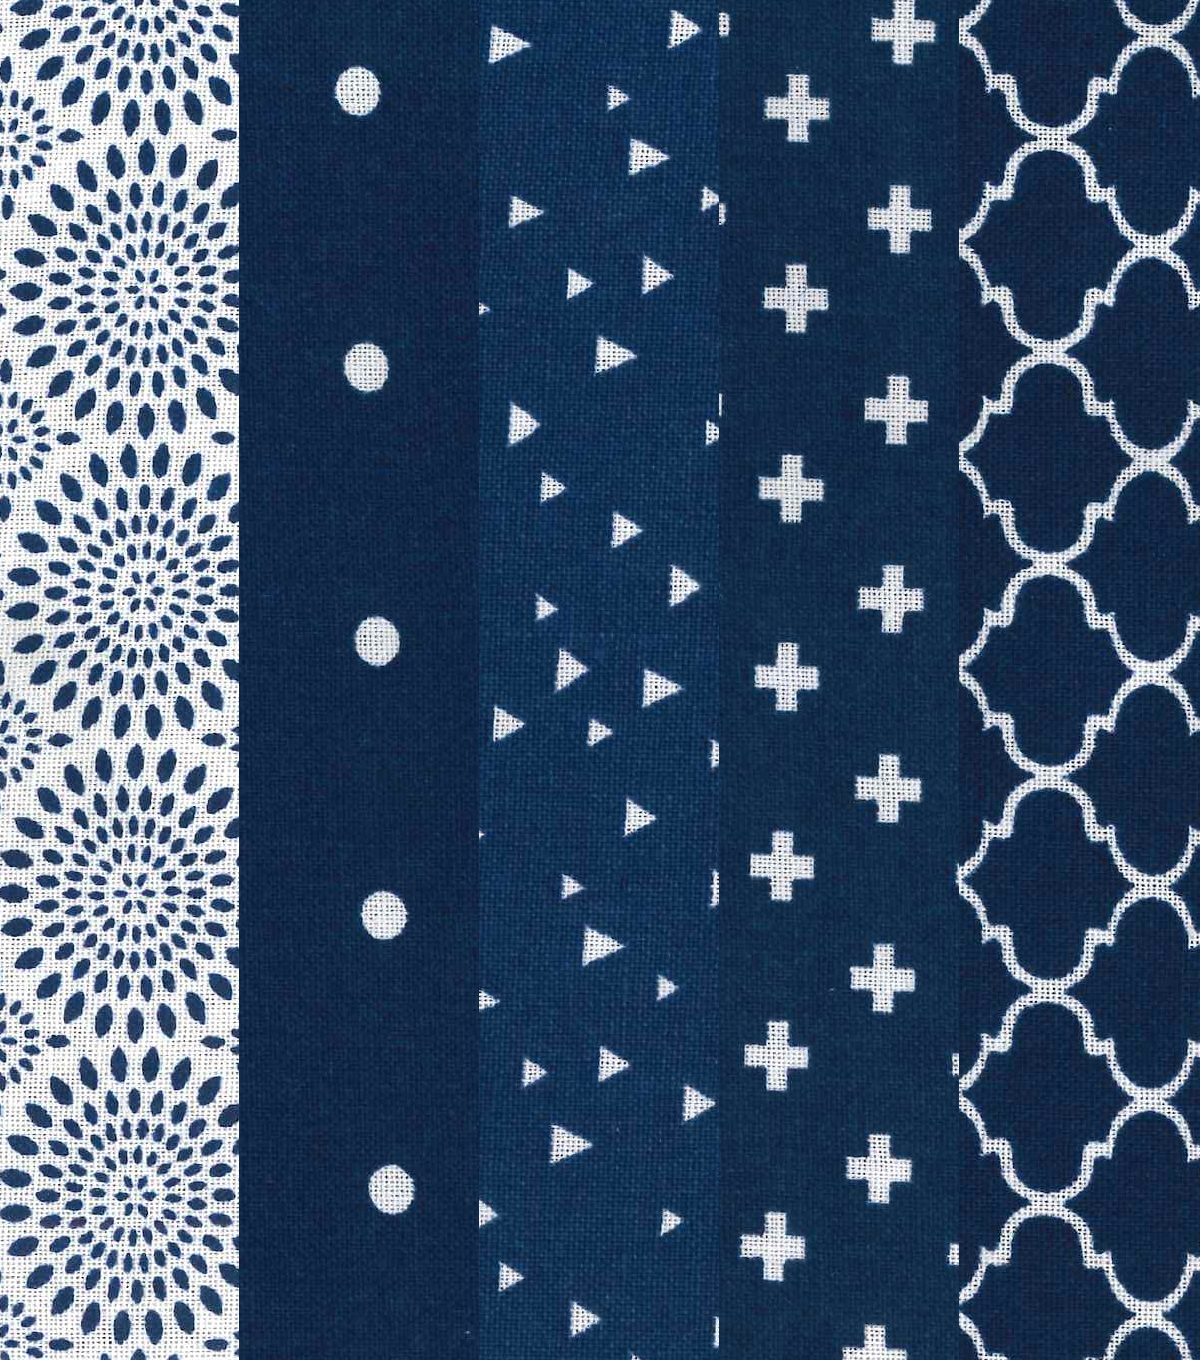 Jelly Roll Cotton Fabric 2.5\'\'-Assorted Navy & White Patterns | JOANN